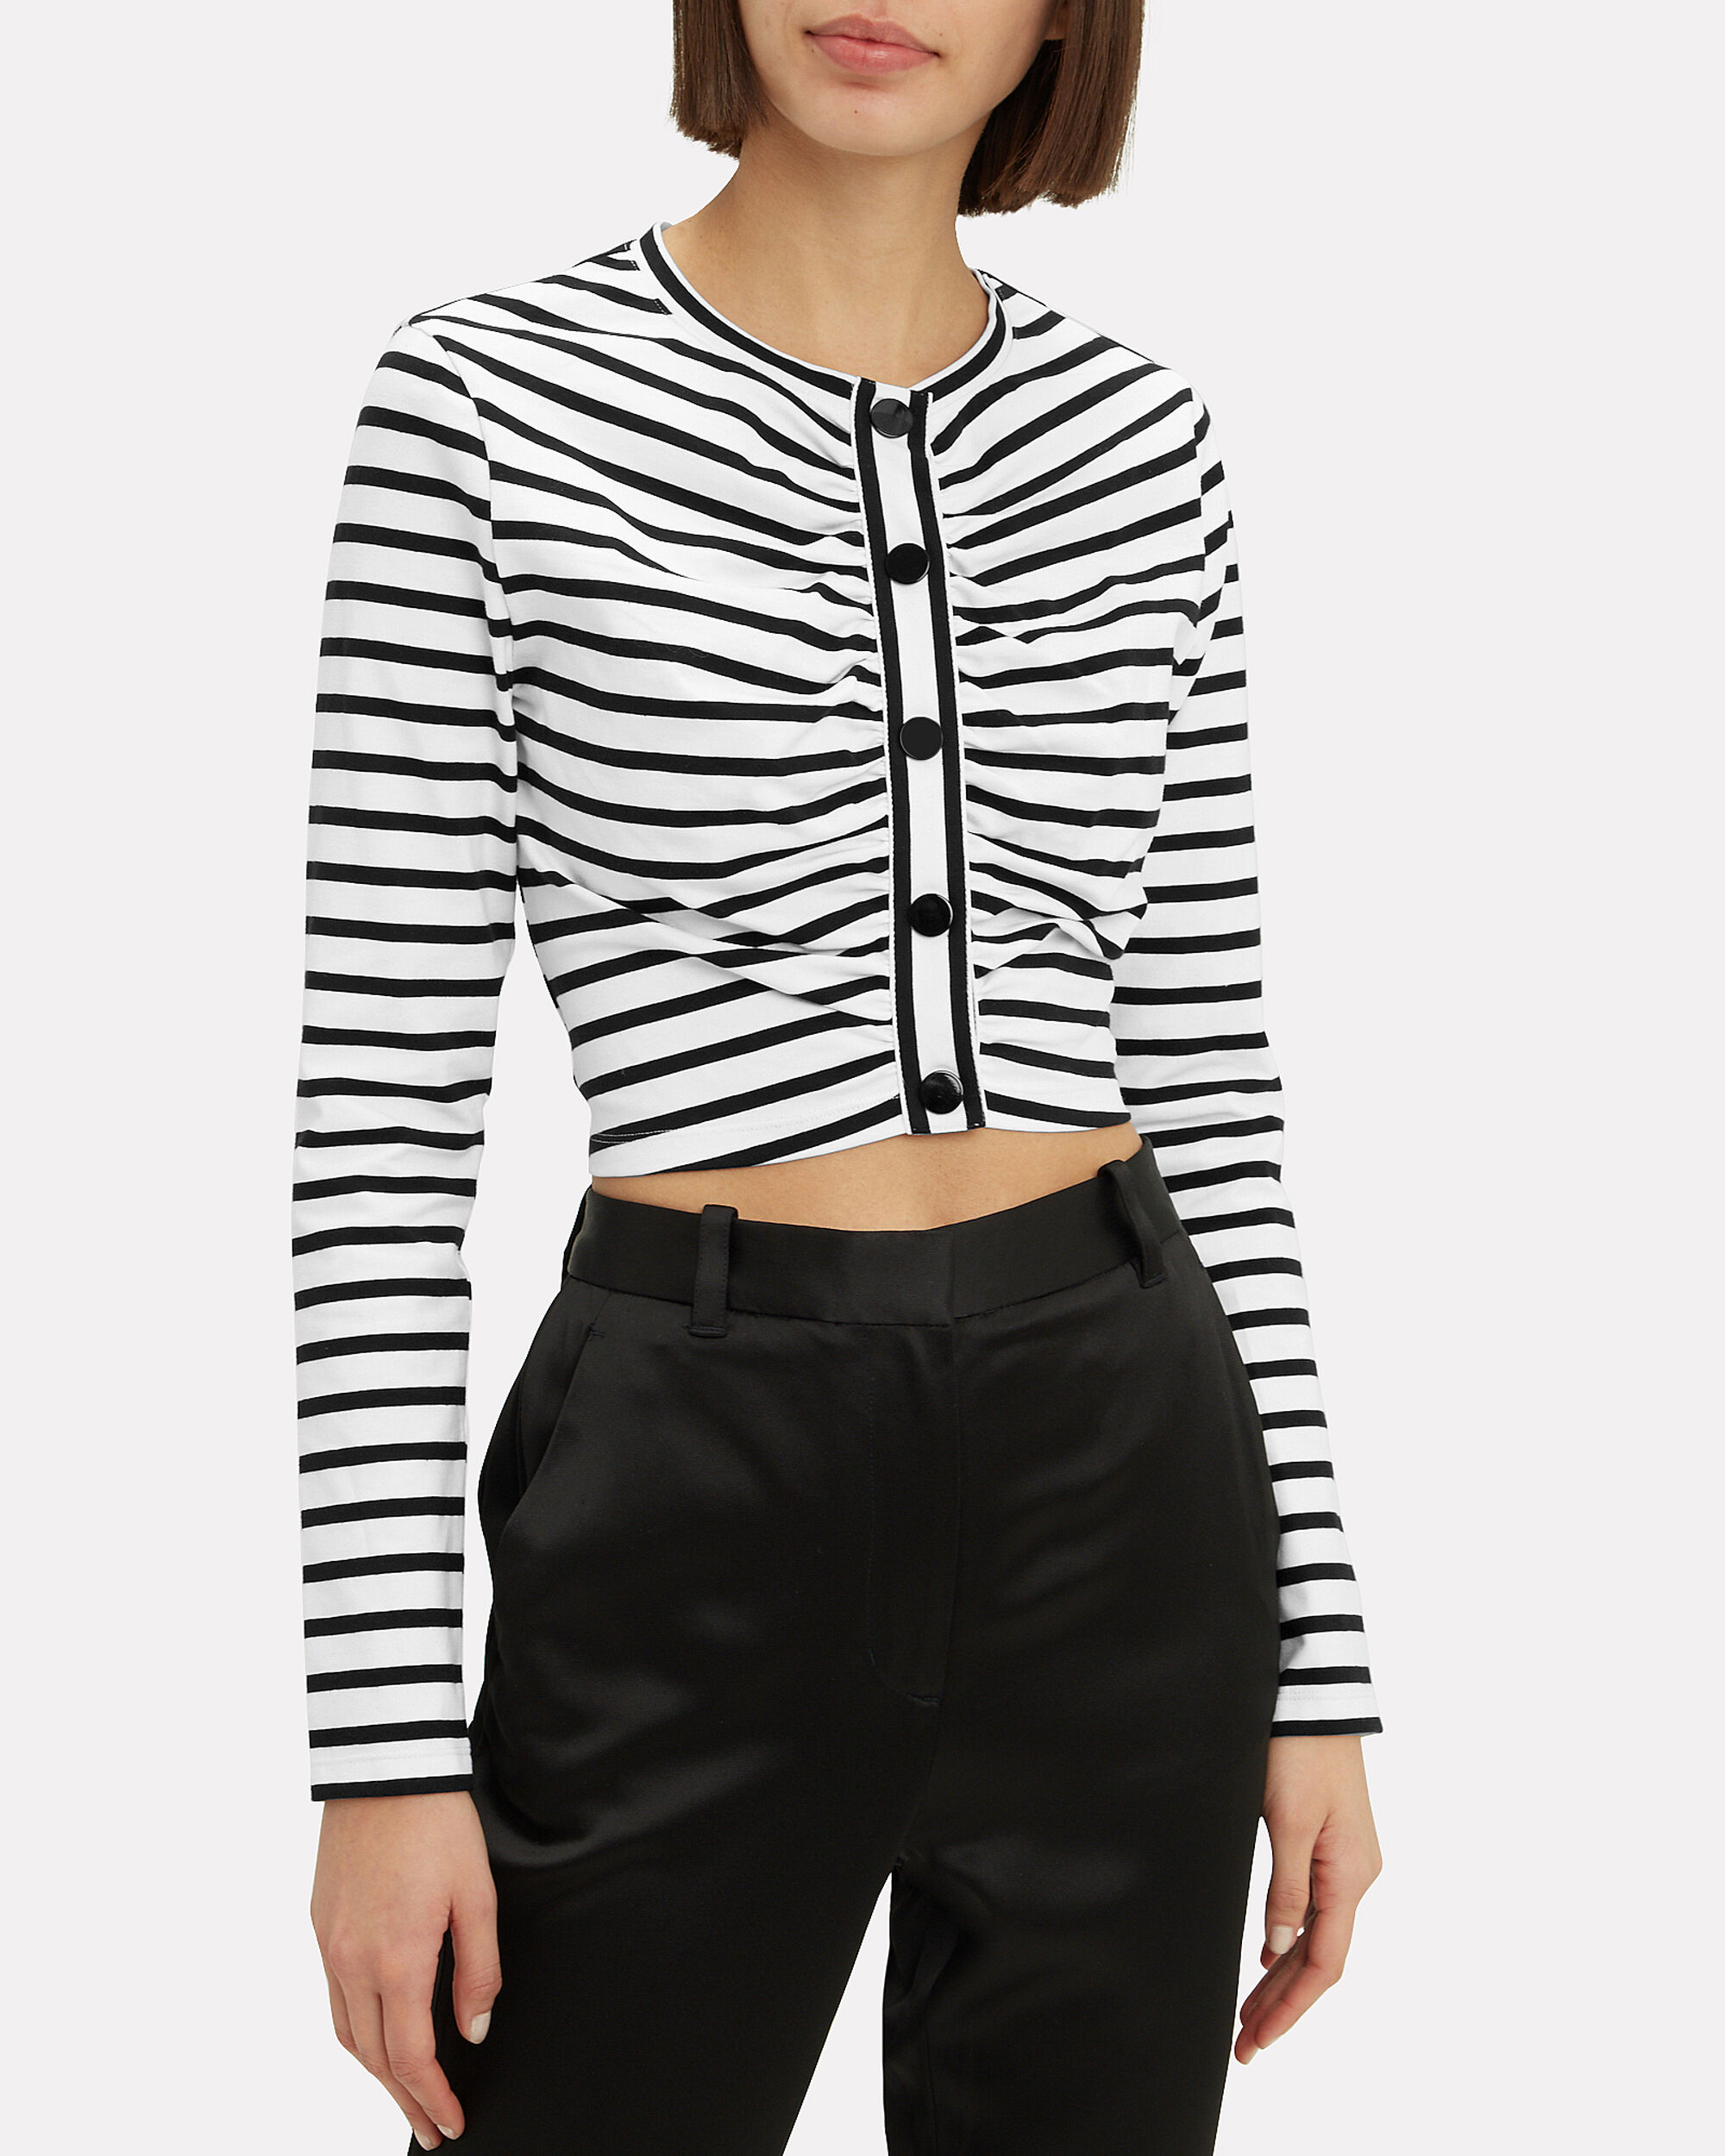 Stripped Cropped T-Shirt, BLACK/WHITE, hi-res